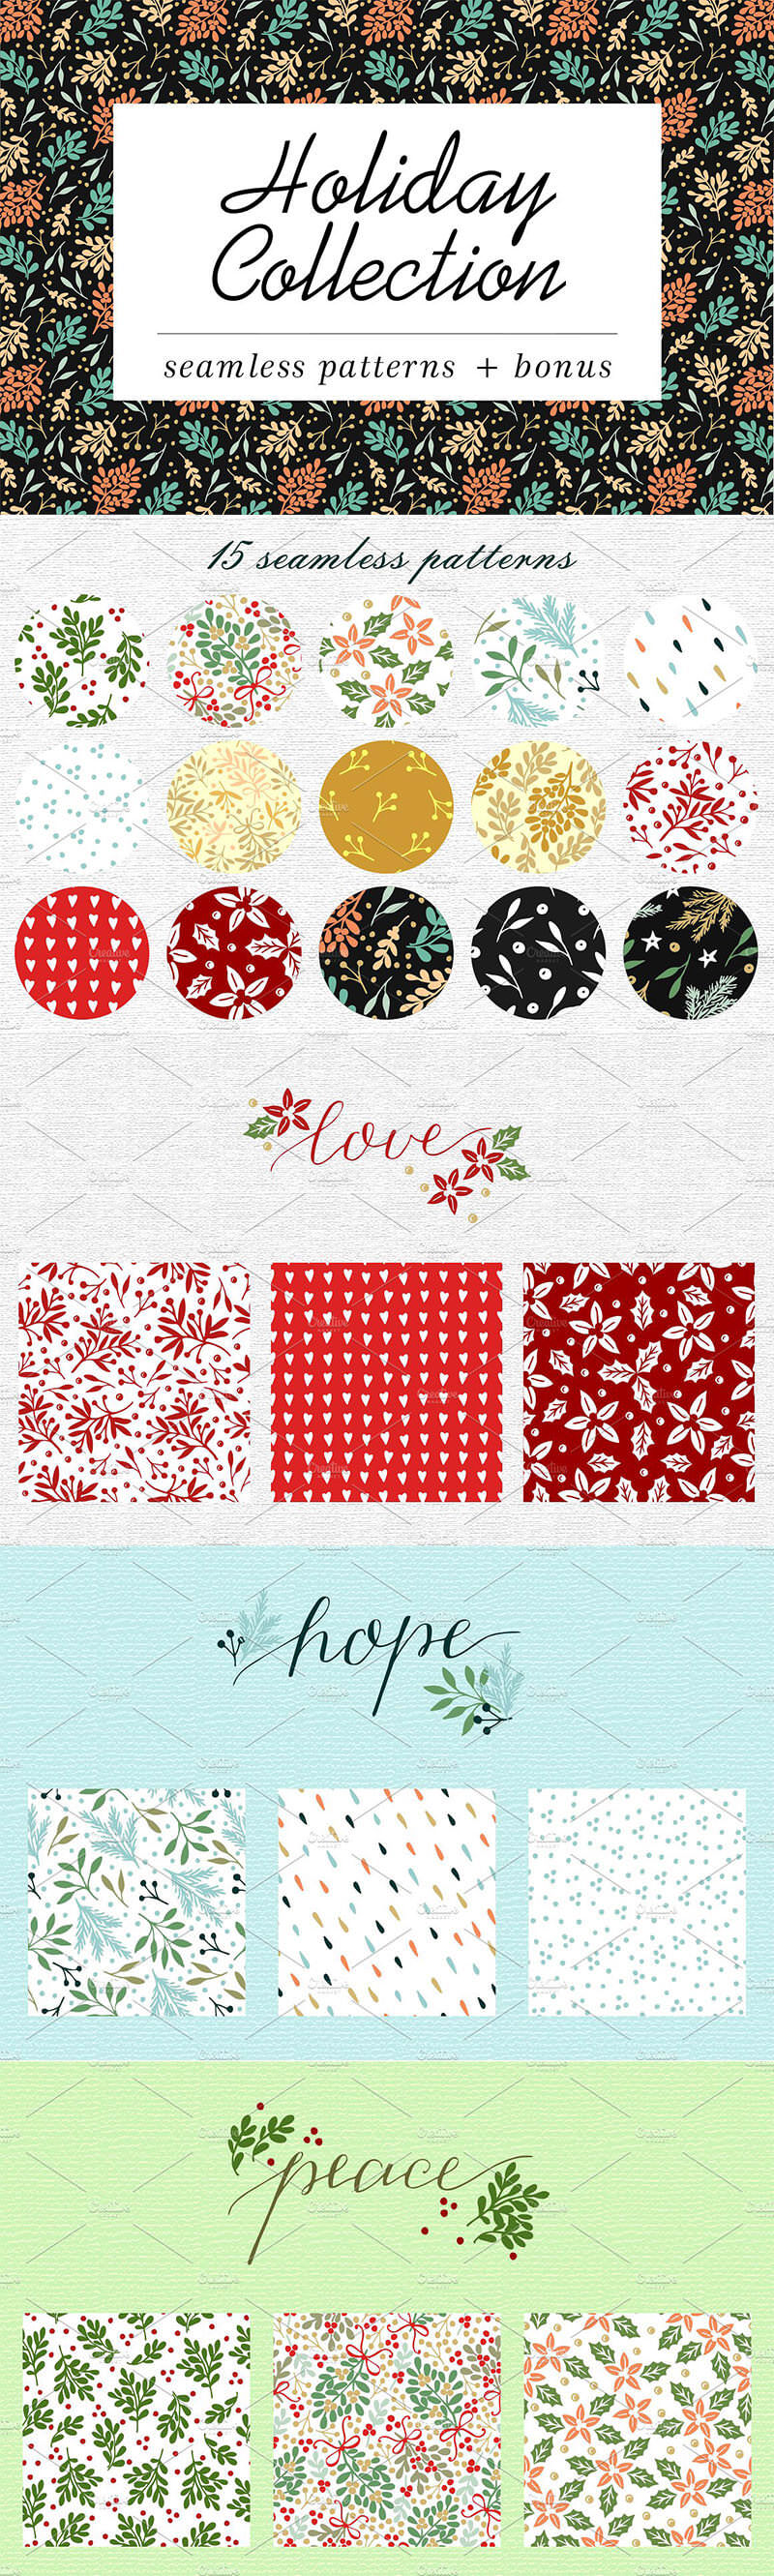 holiday-pattern-collection